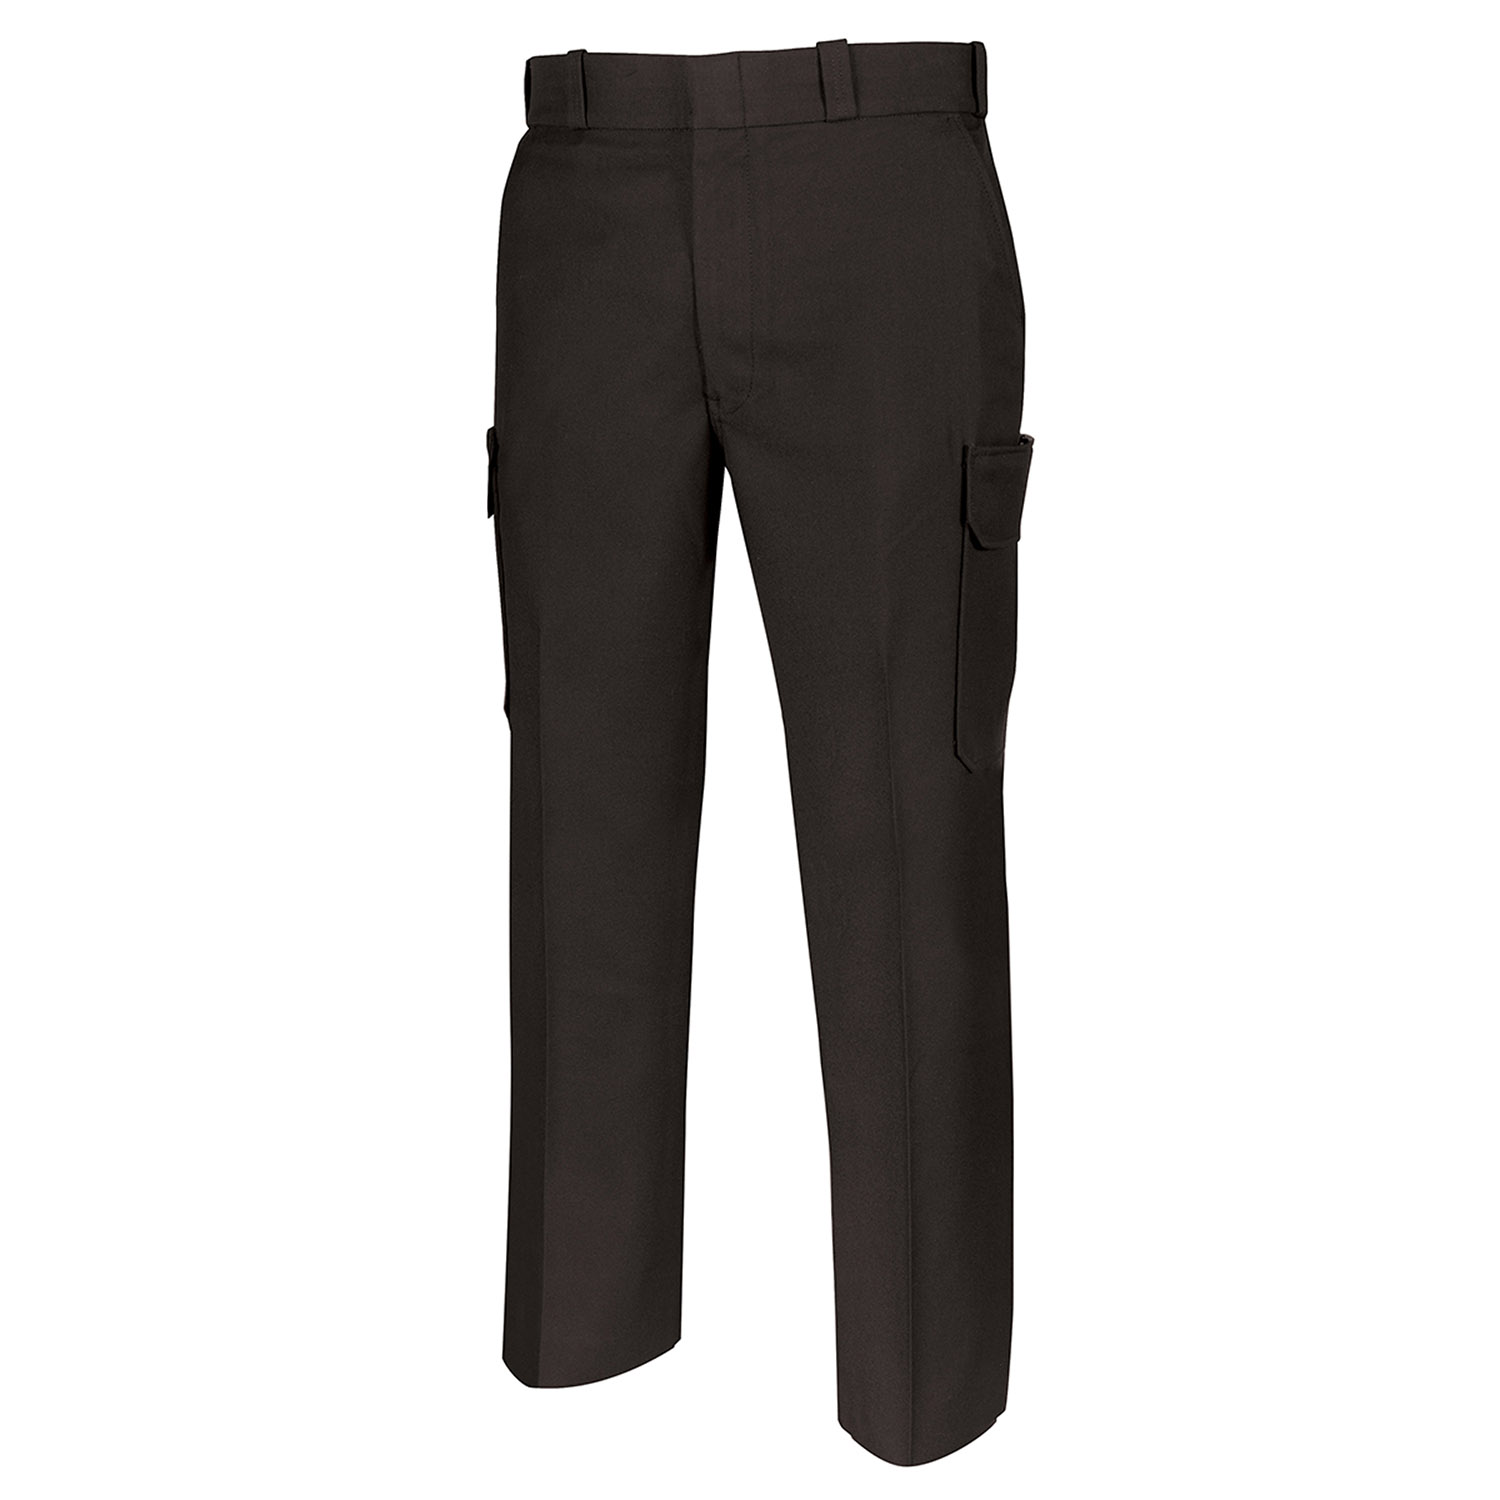 Elbeco Duty Maxx Men's Cargo Trousers